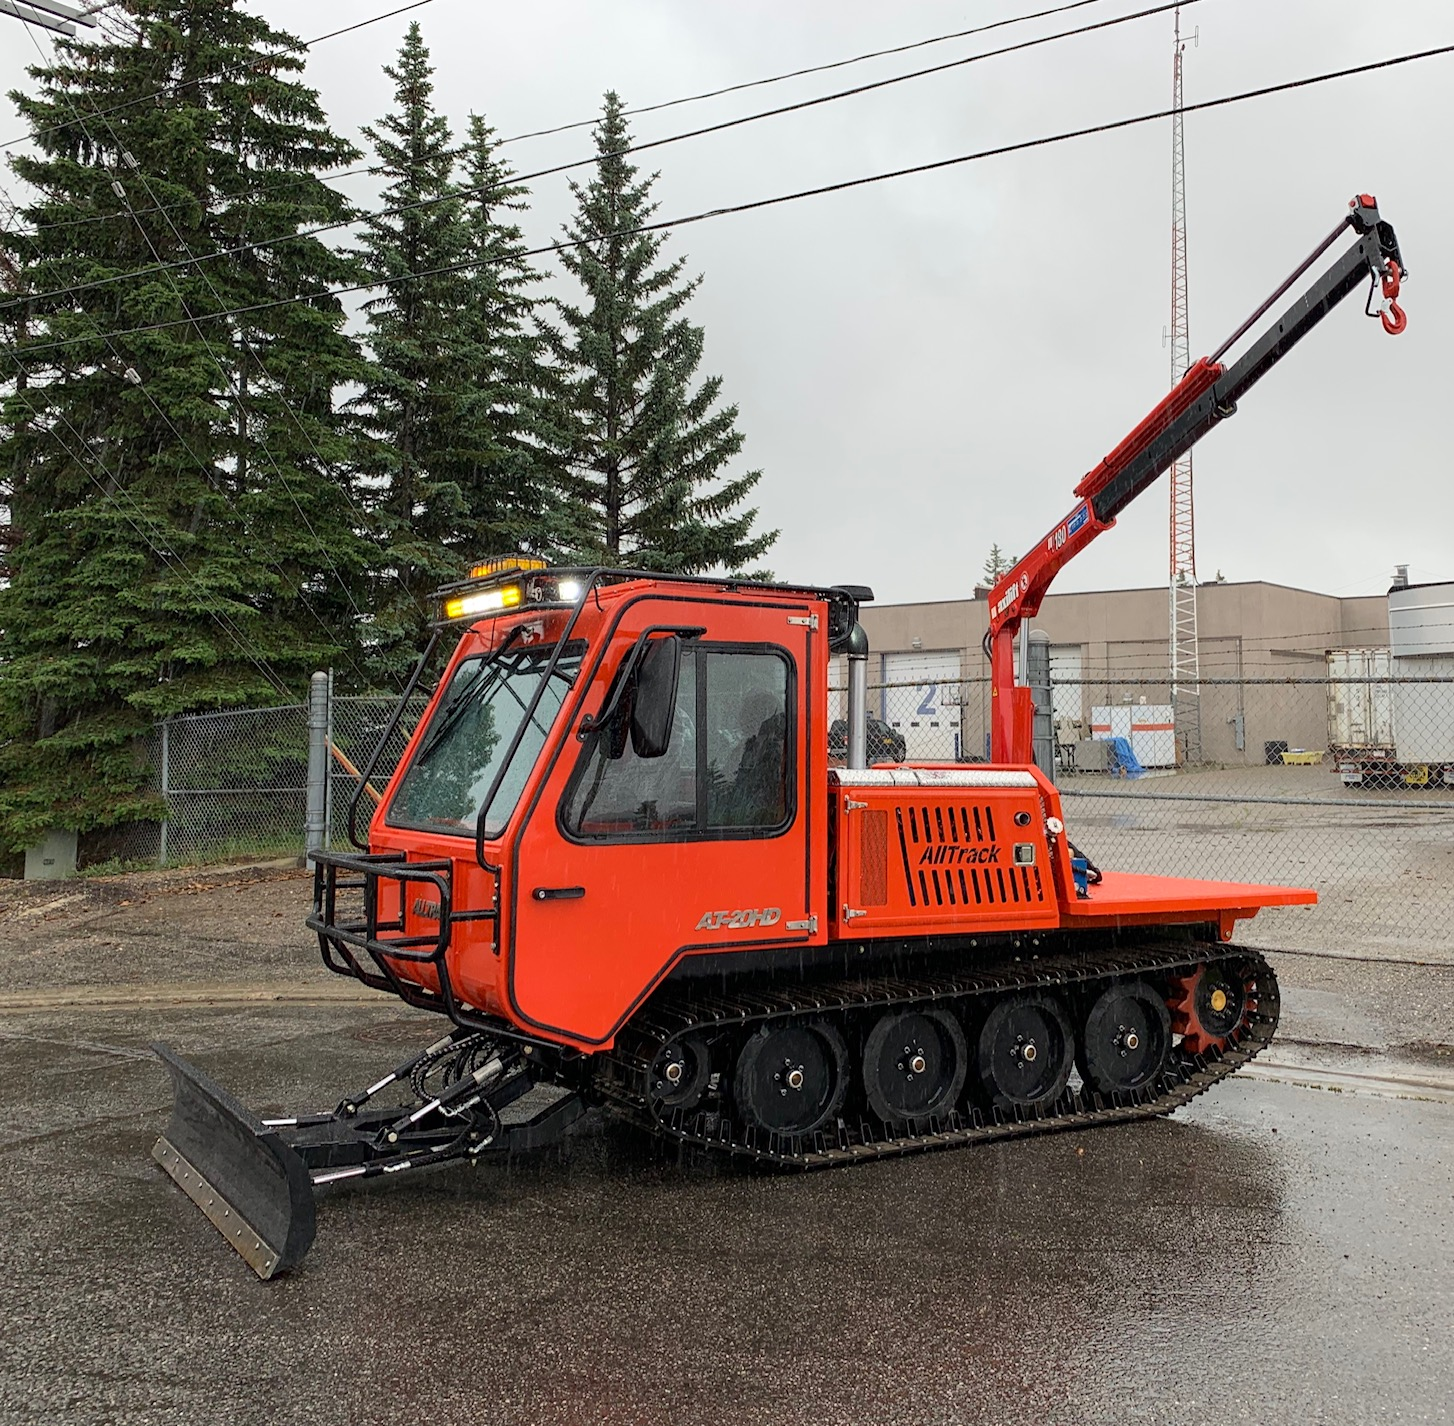 AT-20HD tracked vehicle with crane